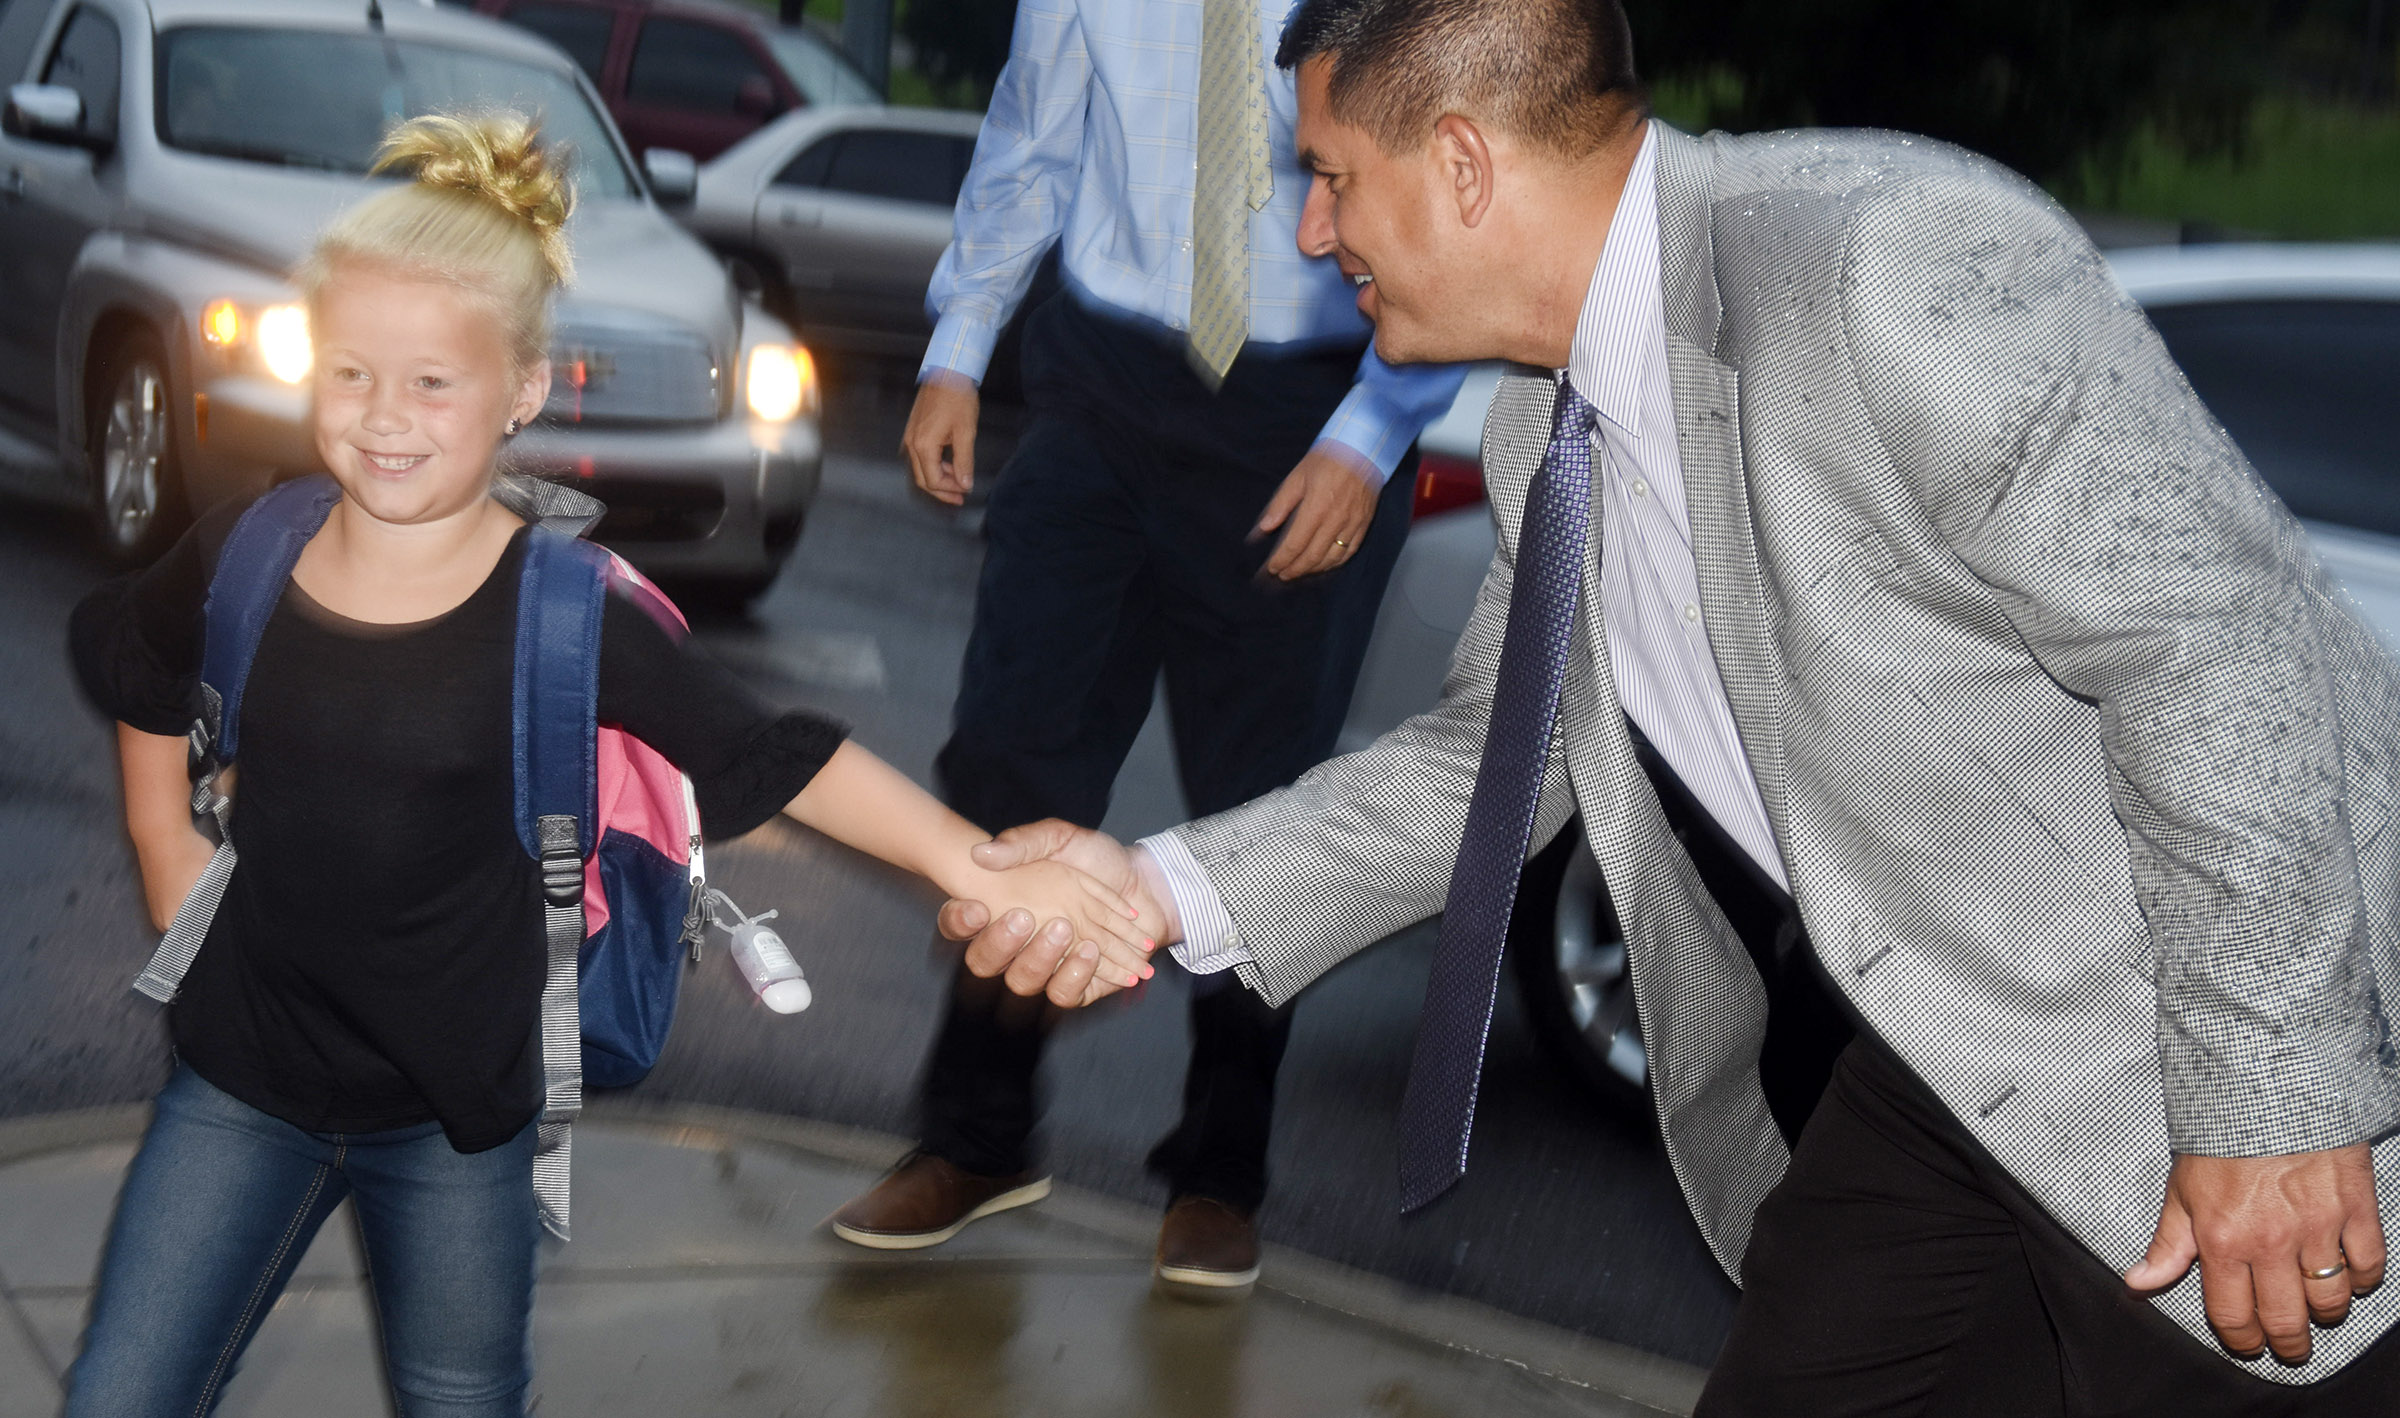 Campbellsville Independent Schools Superintendent Kirby Smith welcomes second-grader Lillie Judd to Campbellsville Elementary School.